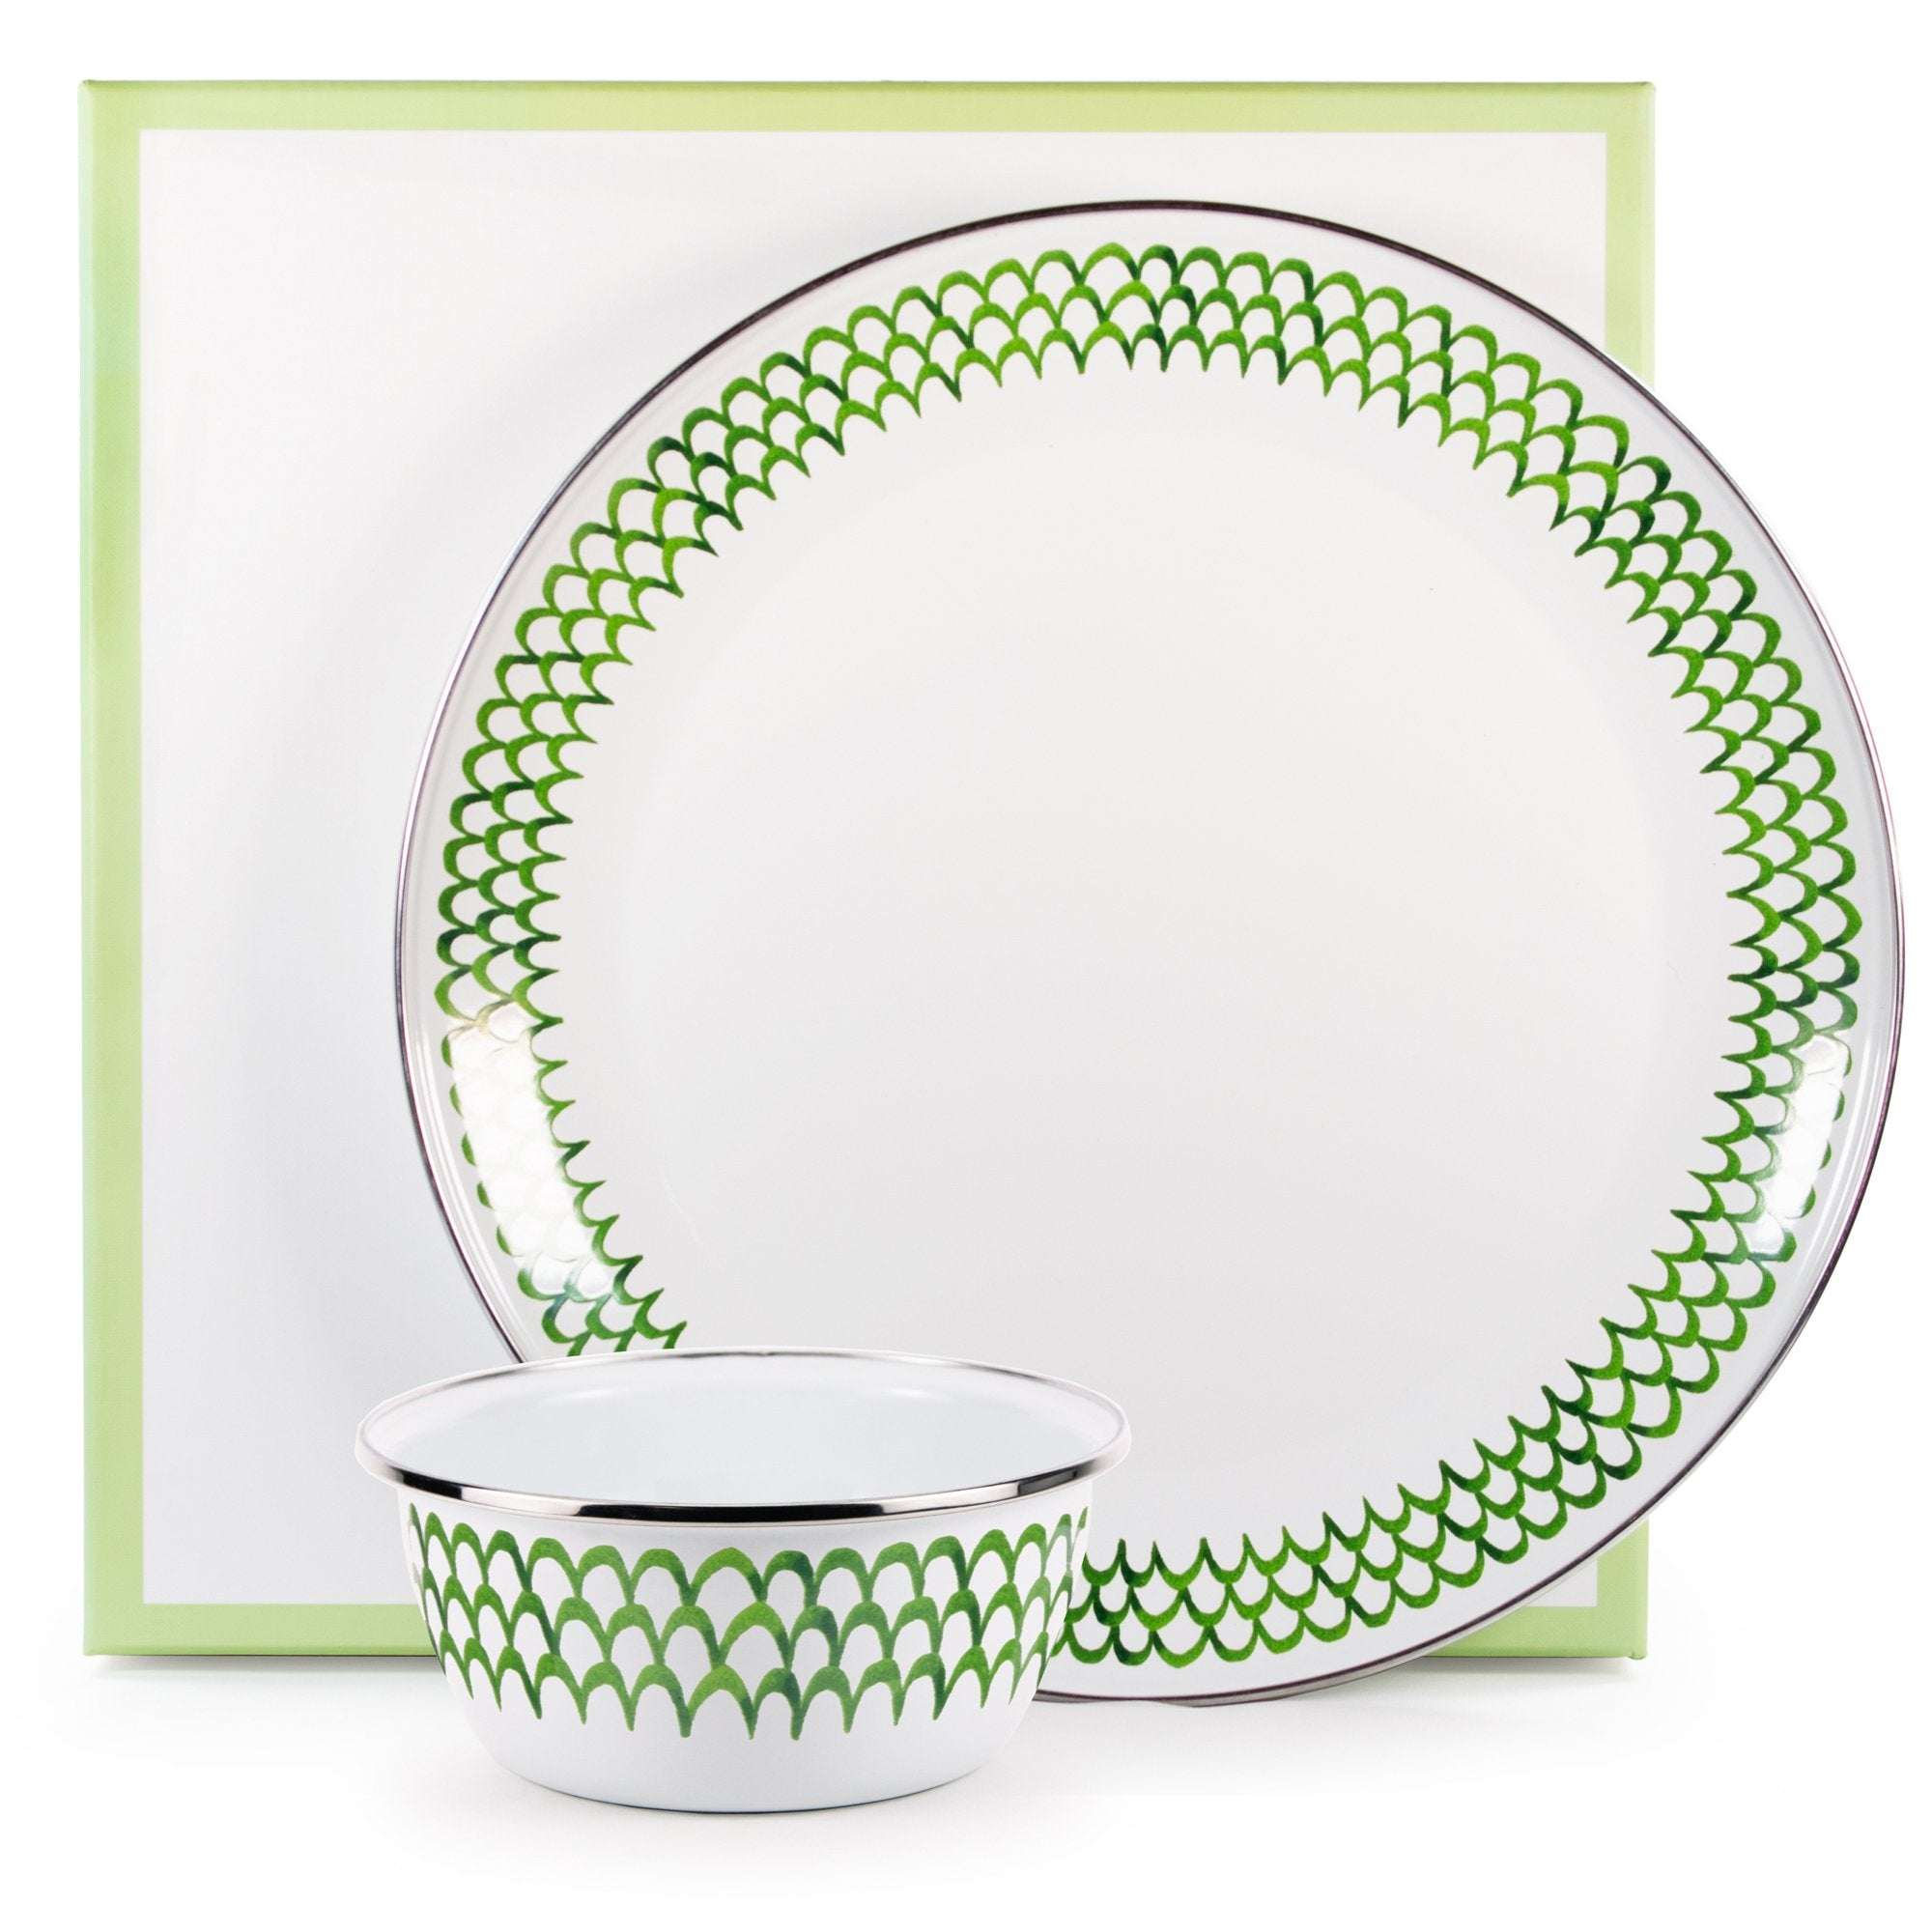 GS65 - Green Scallop Dip Set Product 1